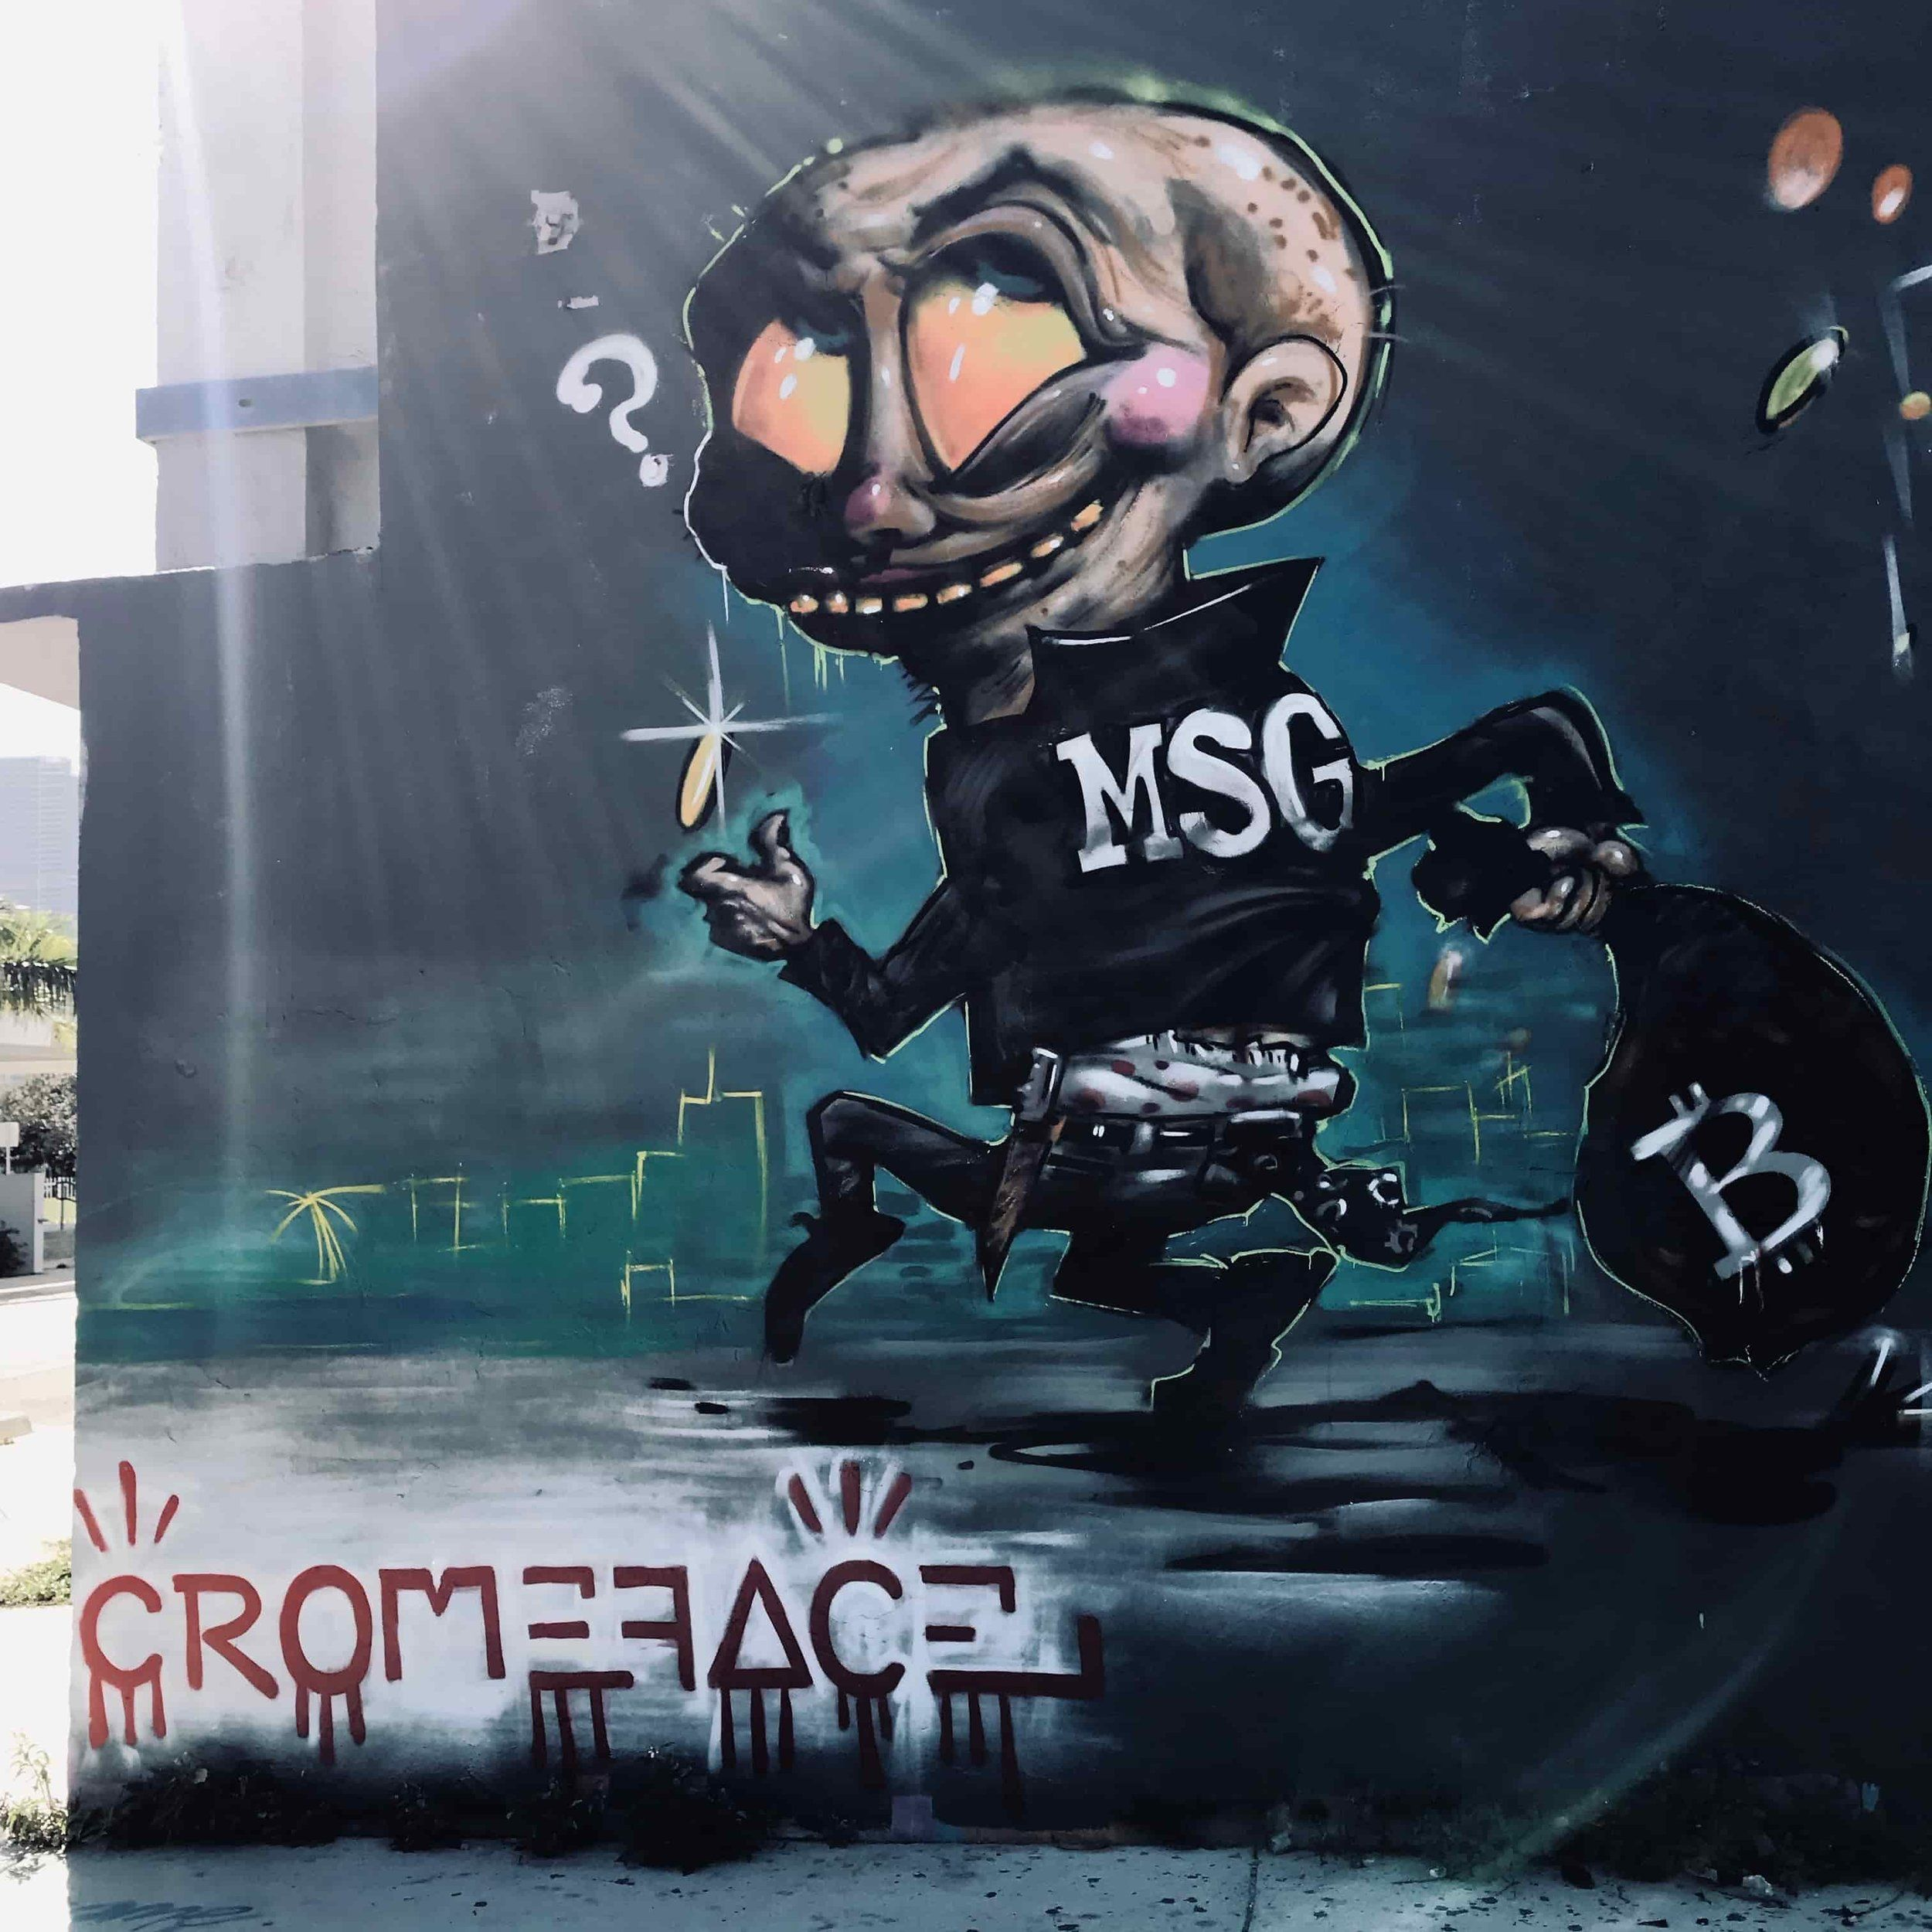 Bandit wearing the msg jacket artist crome mary poppins graffiti graphite